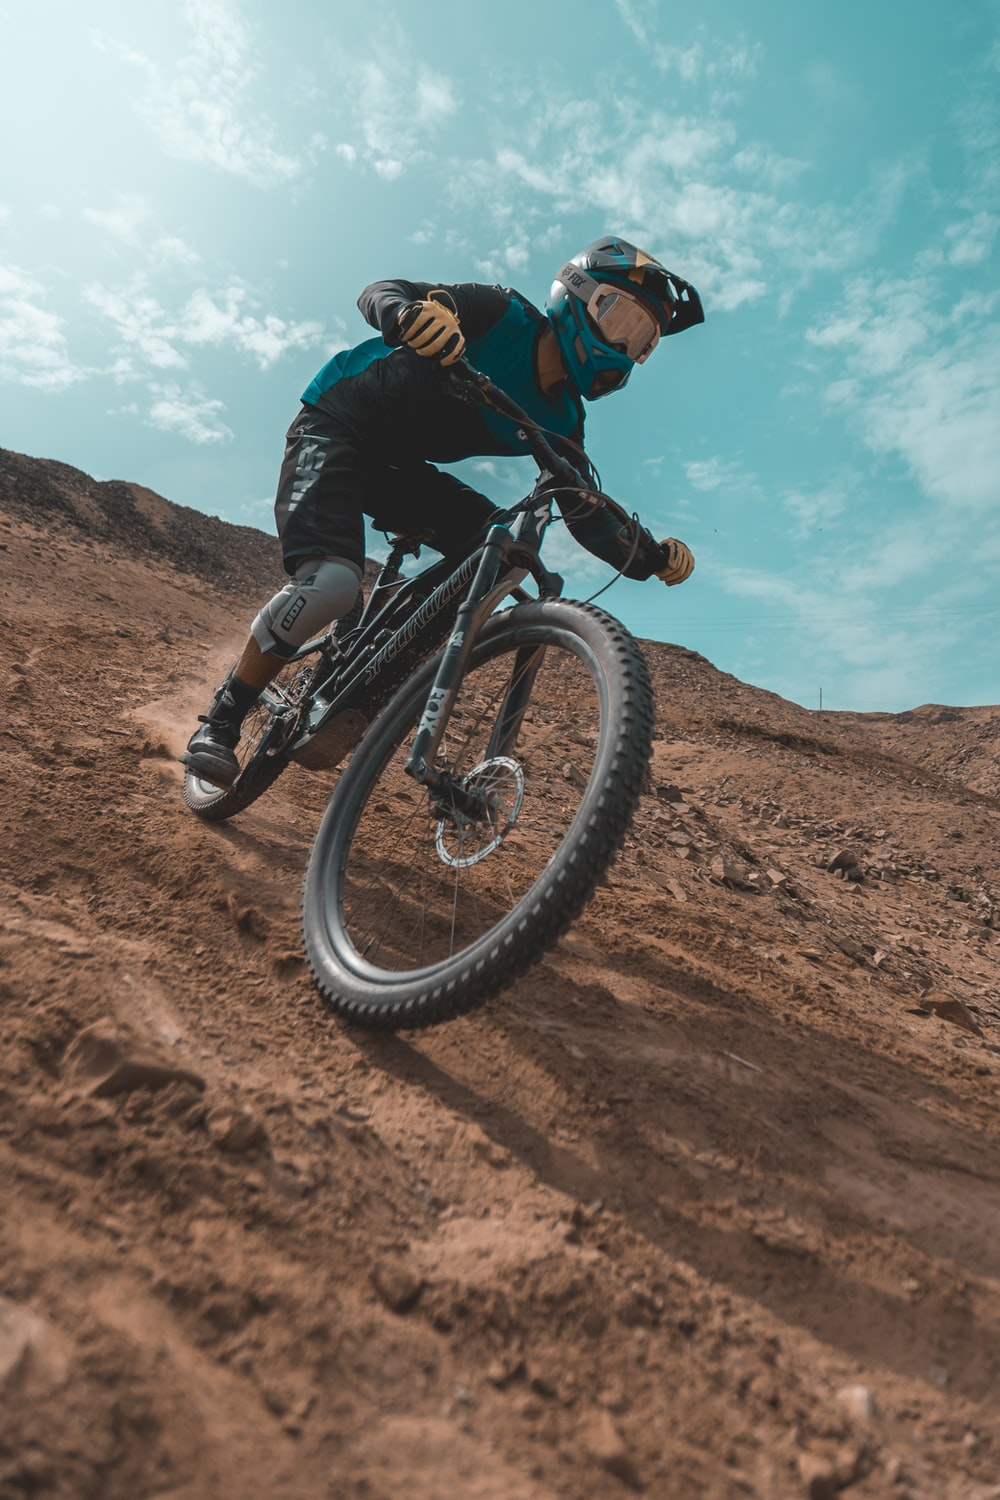 man rides with mountain bike on a steep downhill track and is wearing flat pedal MTB shoes